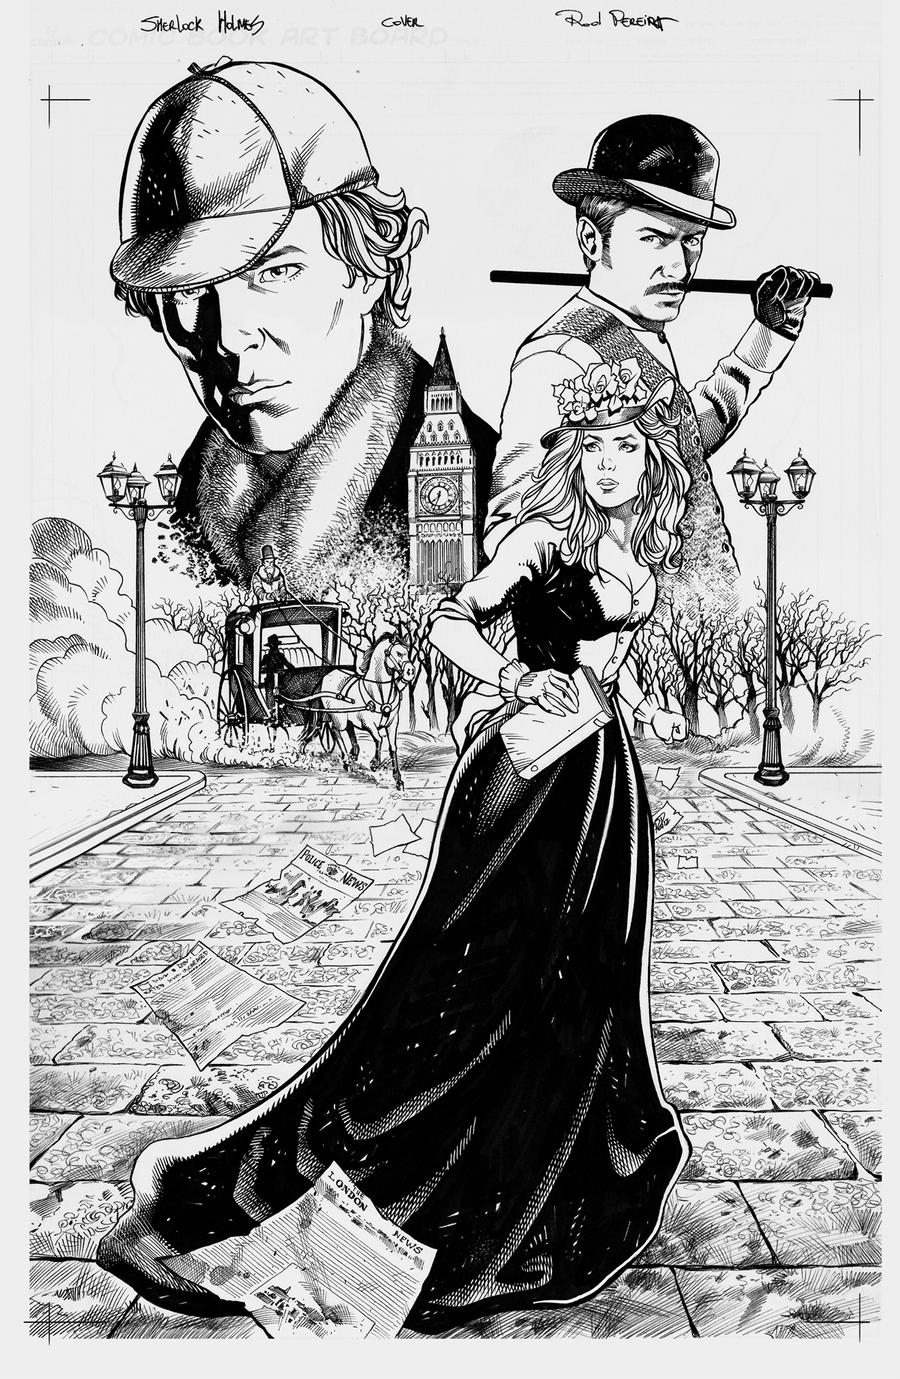 Sherlock Holmes Pin Up By RodGallery On DeviantArt